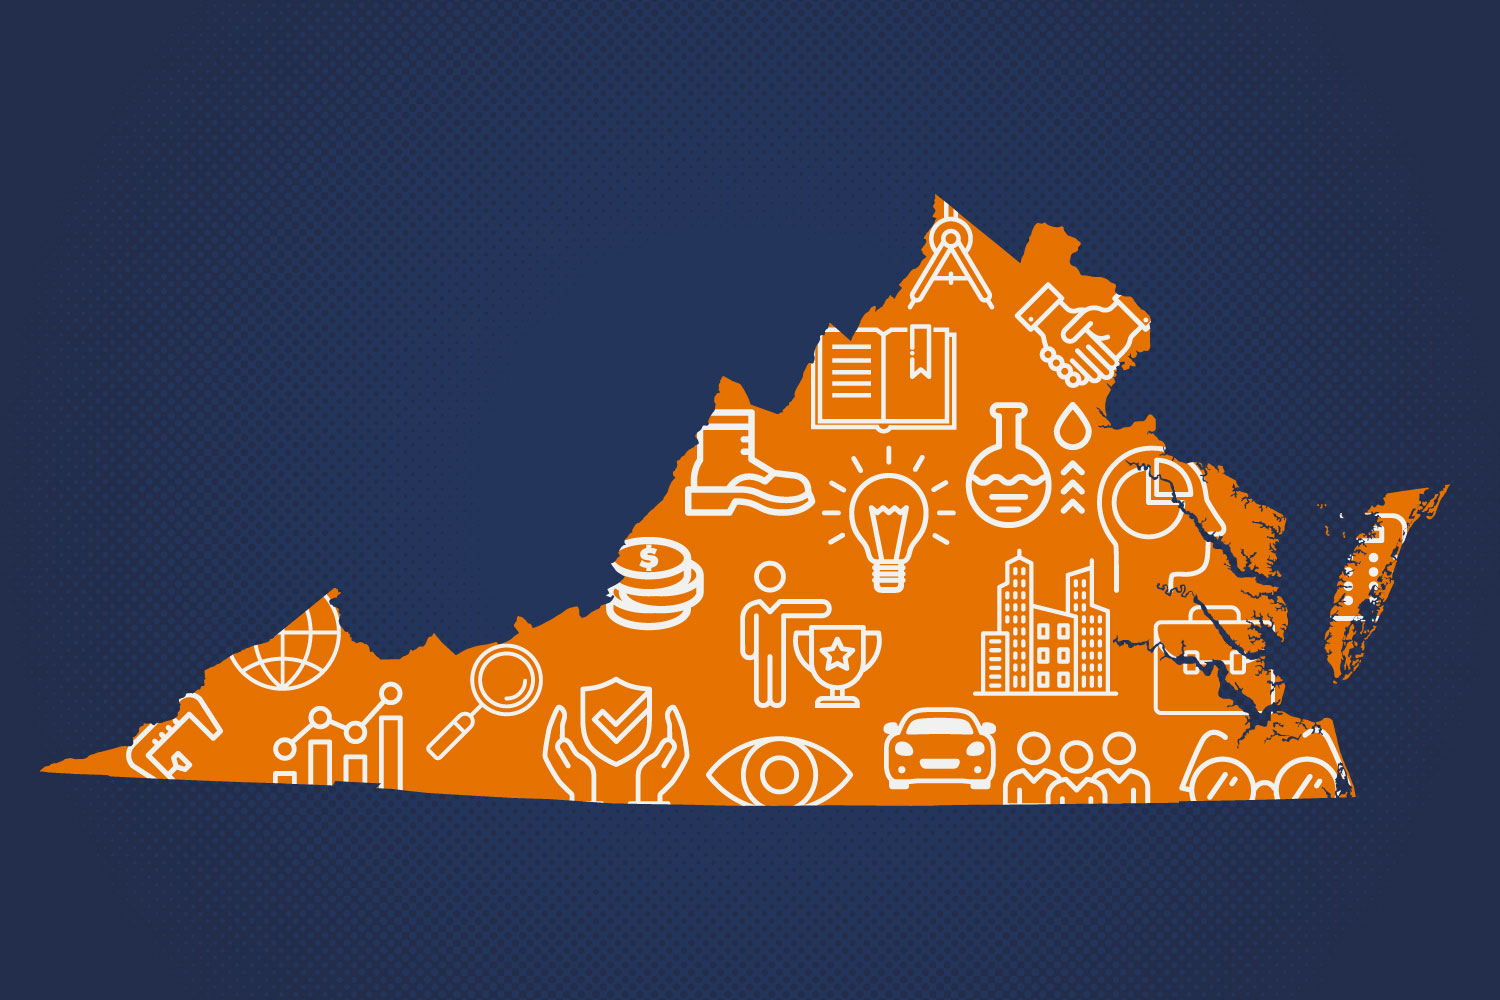 UVA Joins Growth4VA Campaign to Boost Statewide Economic Opportunity